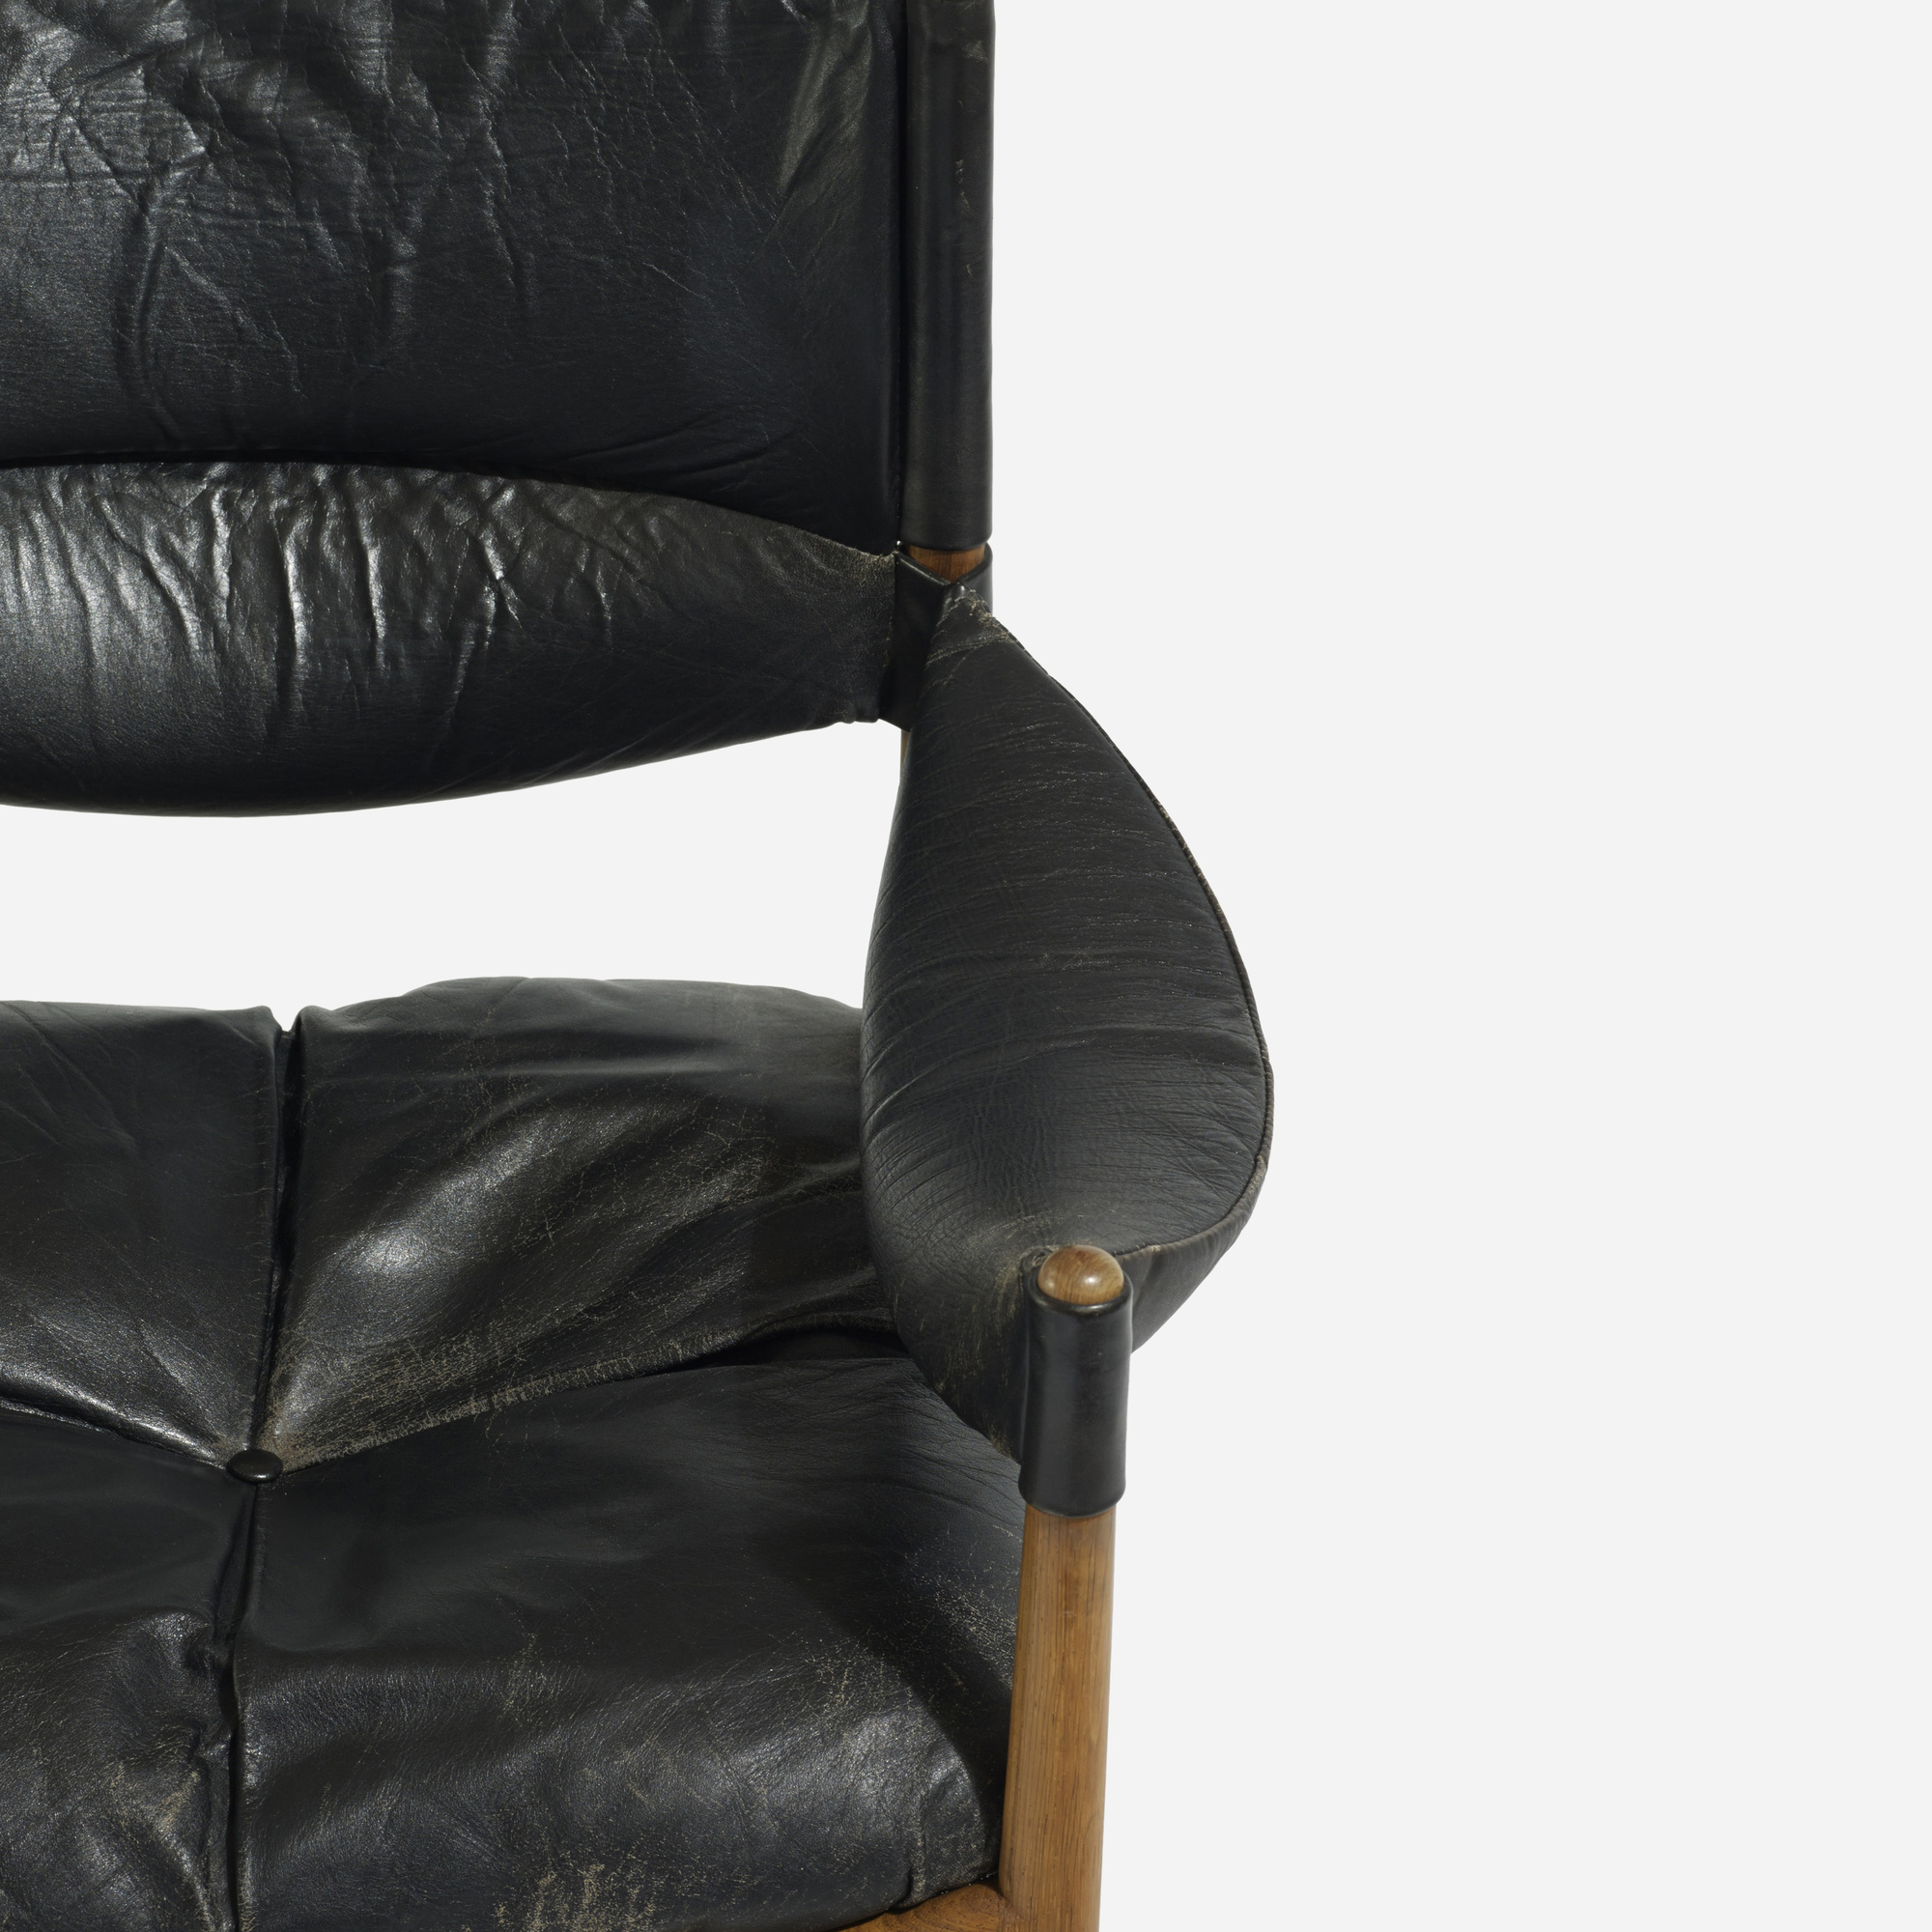 773: Kristian Vedel / pair of Modus lounge chairs and occasional table (3 of 4)